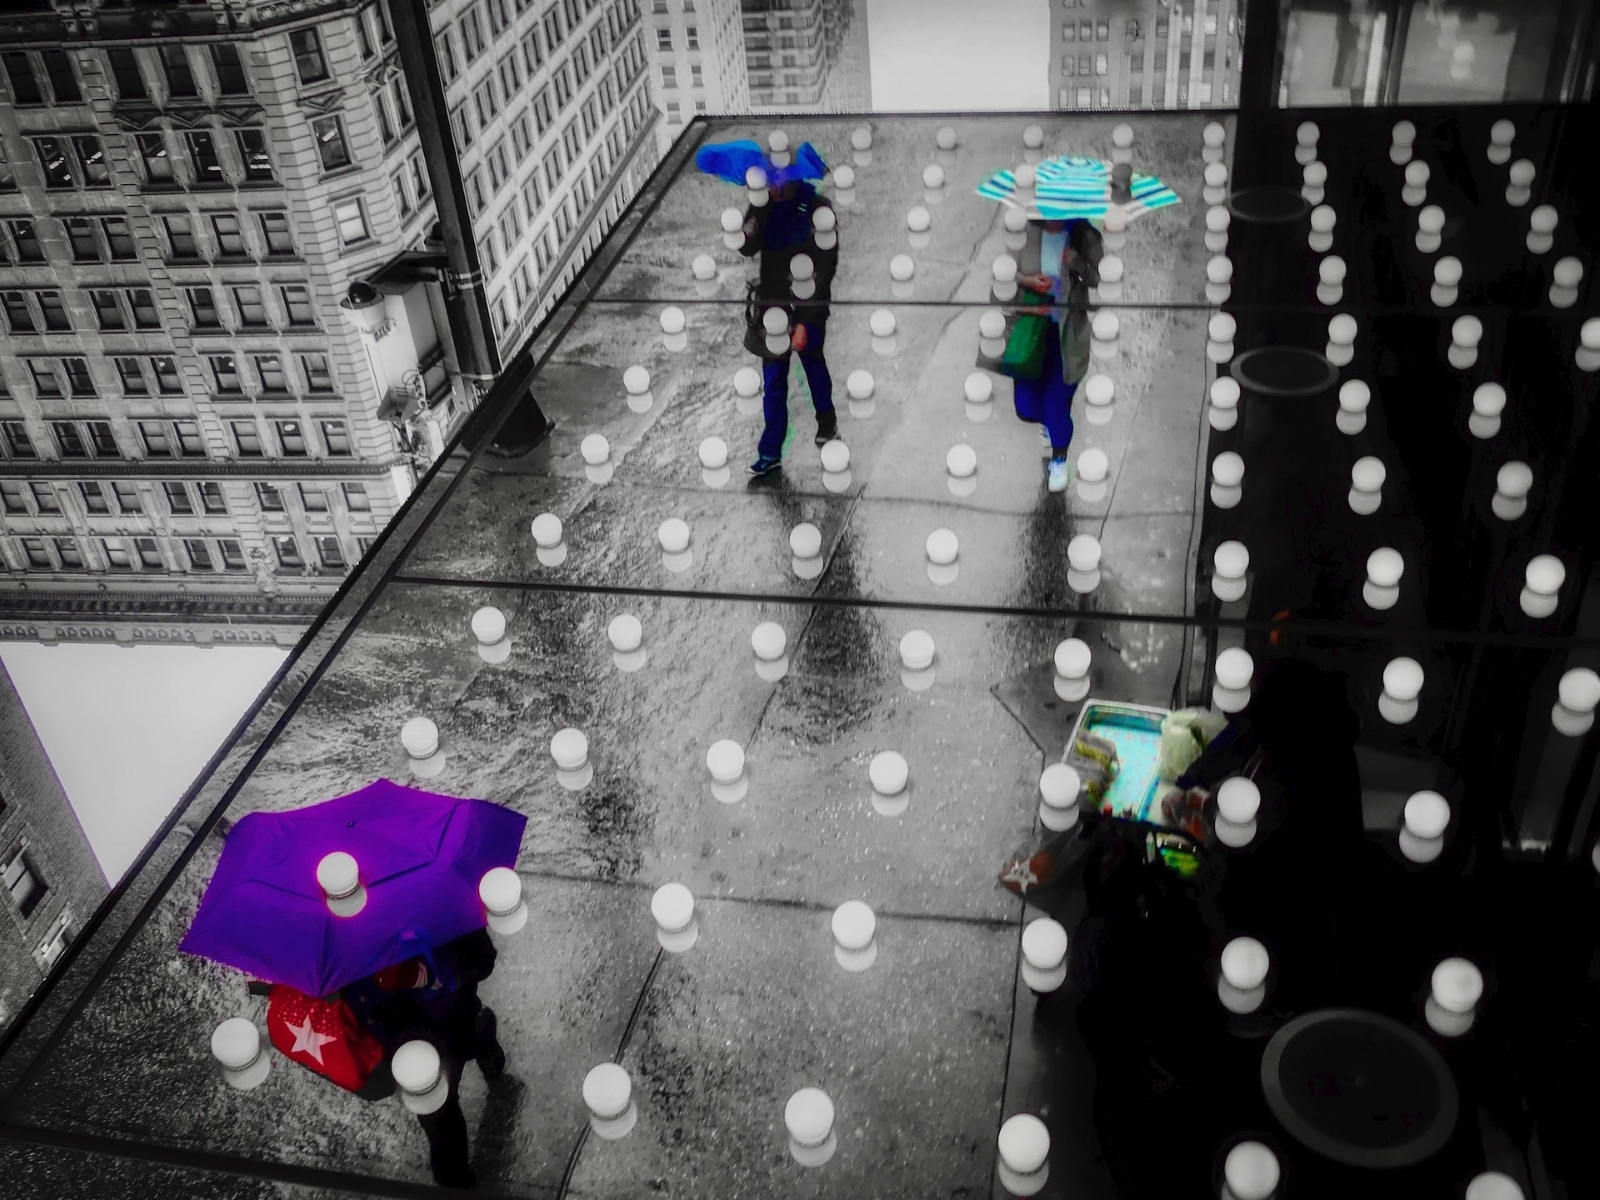 New-York-City_-Rainy-Afternoon-reflected-in-the-underside-of-the-canopy-at-Macys-Herald-Square.-CB-1-Place-by-Bob-Levy-MR